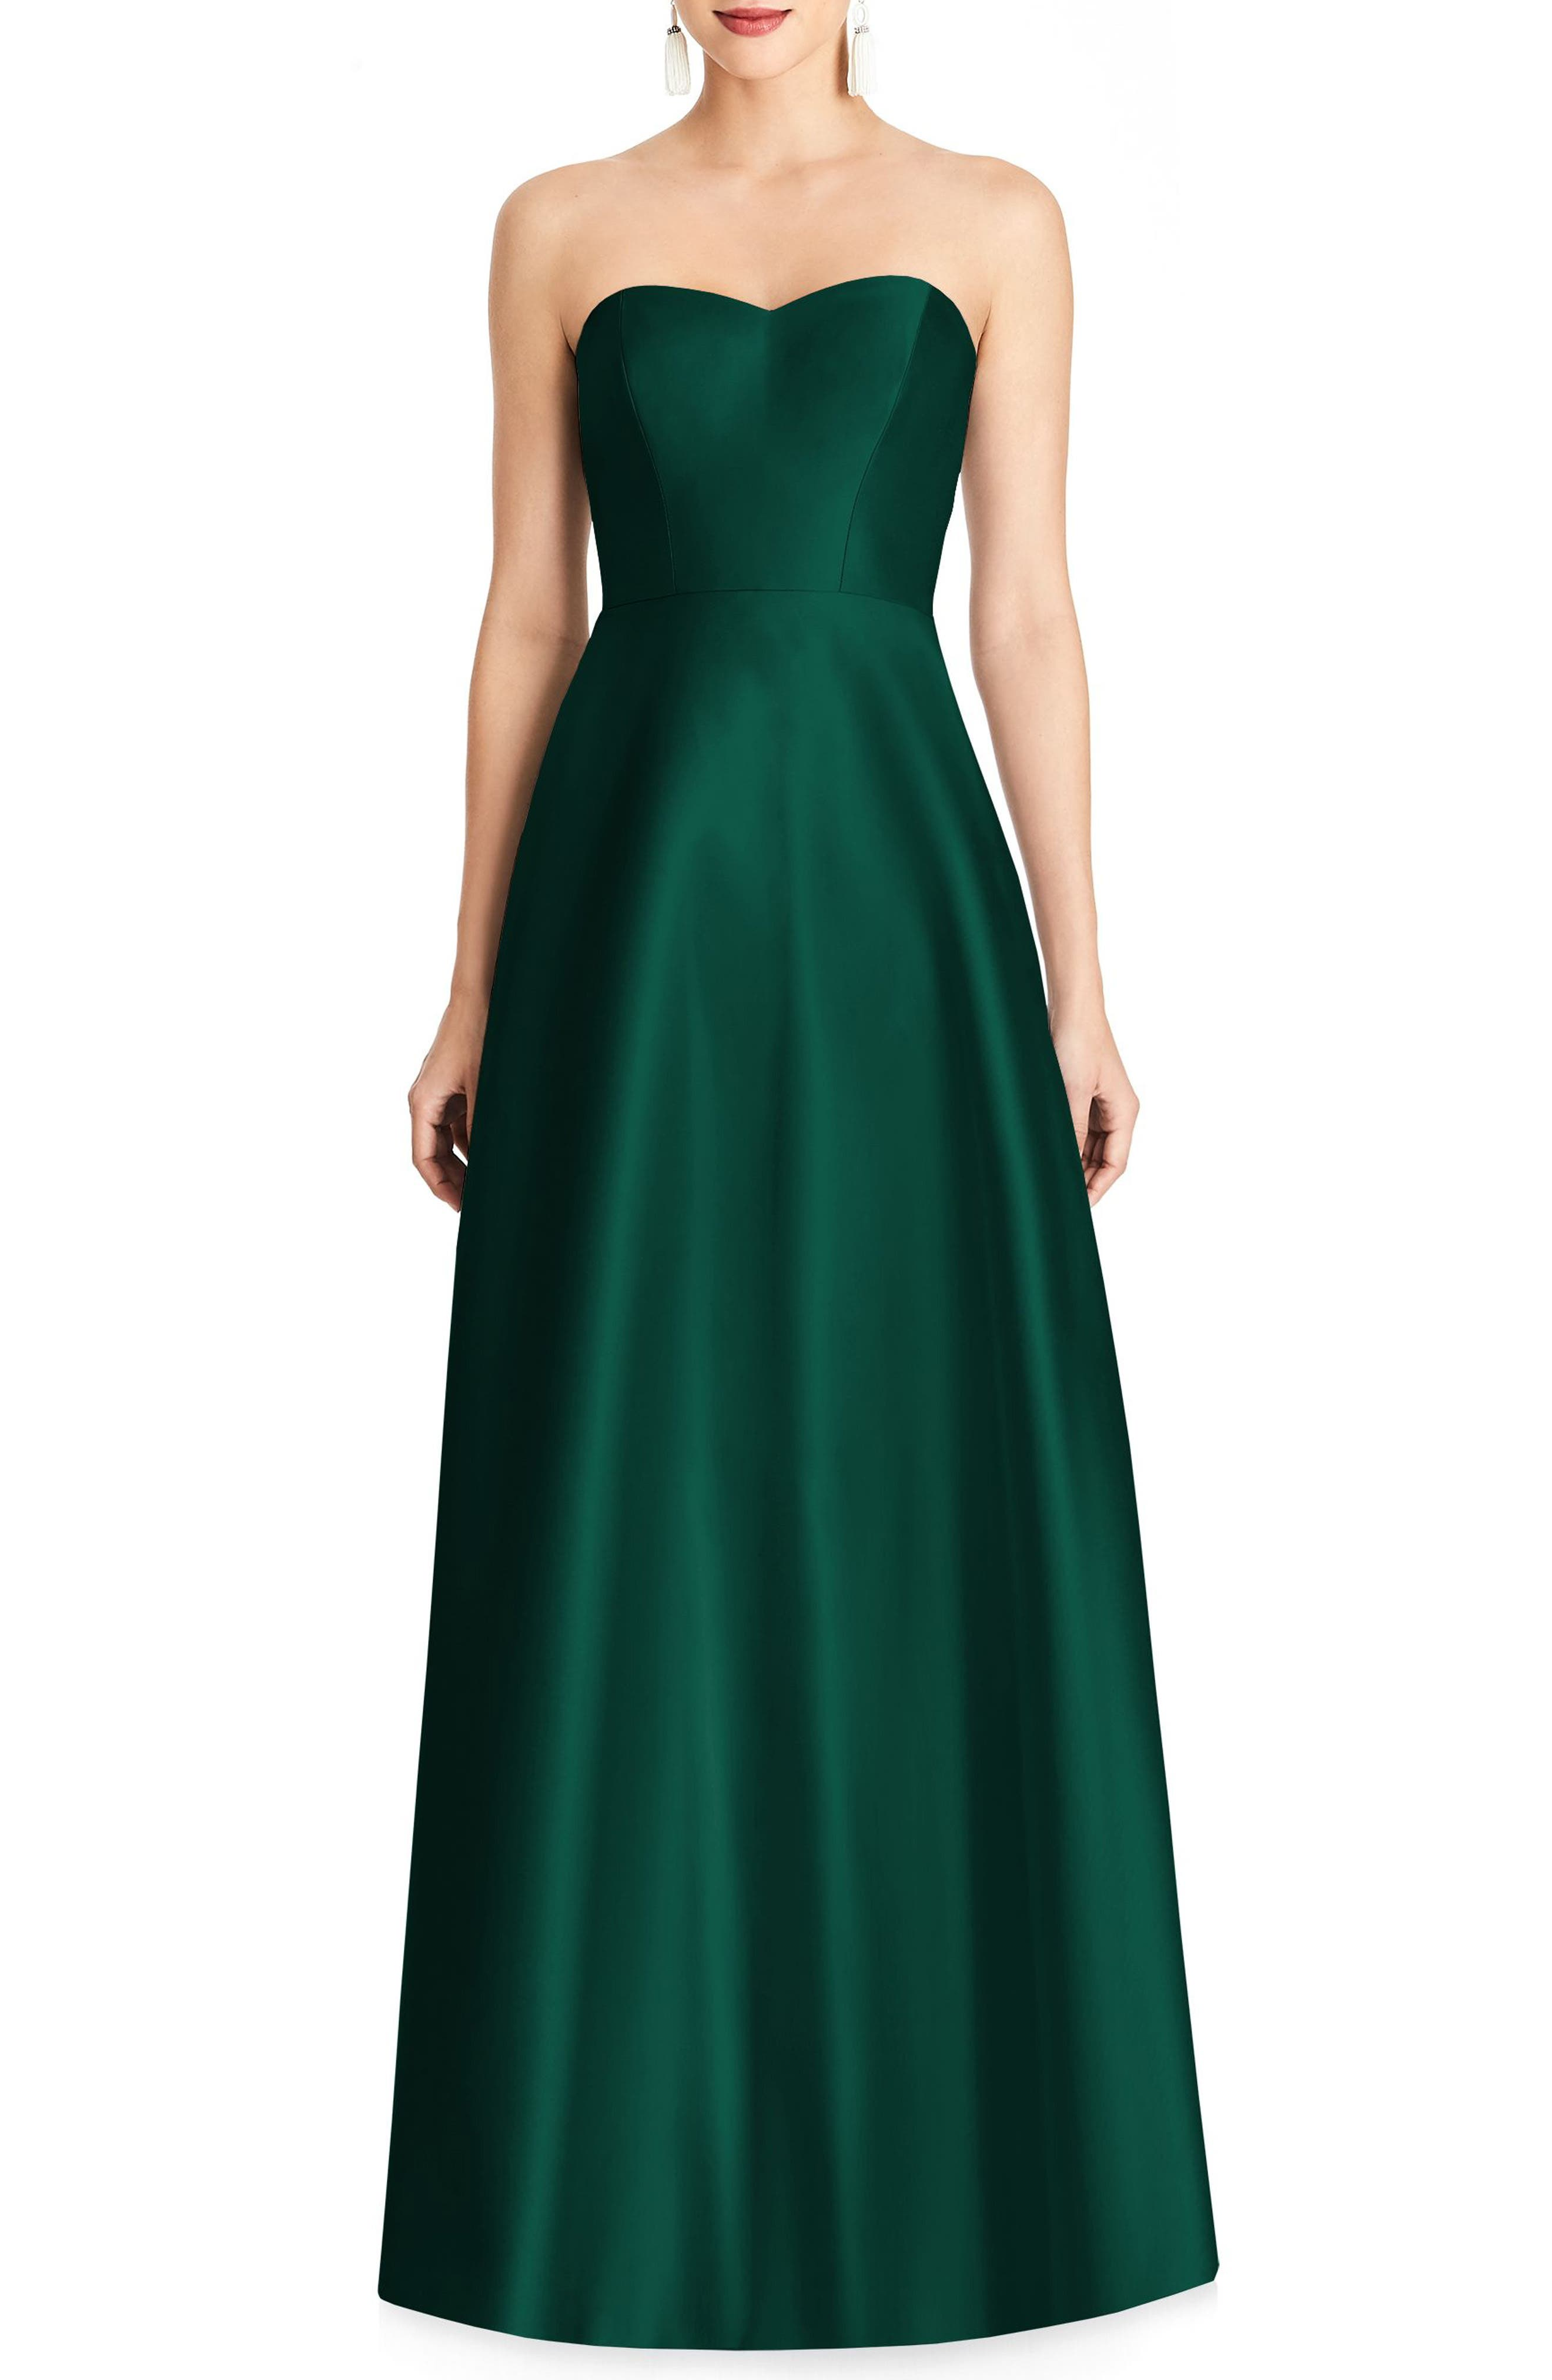 Strikingly simple and utterly flattering, a luminous satin gown puts pretty shoulders on display and creates a waist-nipped silhouette. Style Name: Alfred Sung Strapless Satin A-Line Gown. Style Number: 5507712 1. Available in stores.